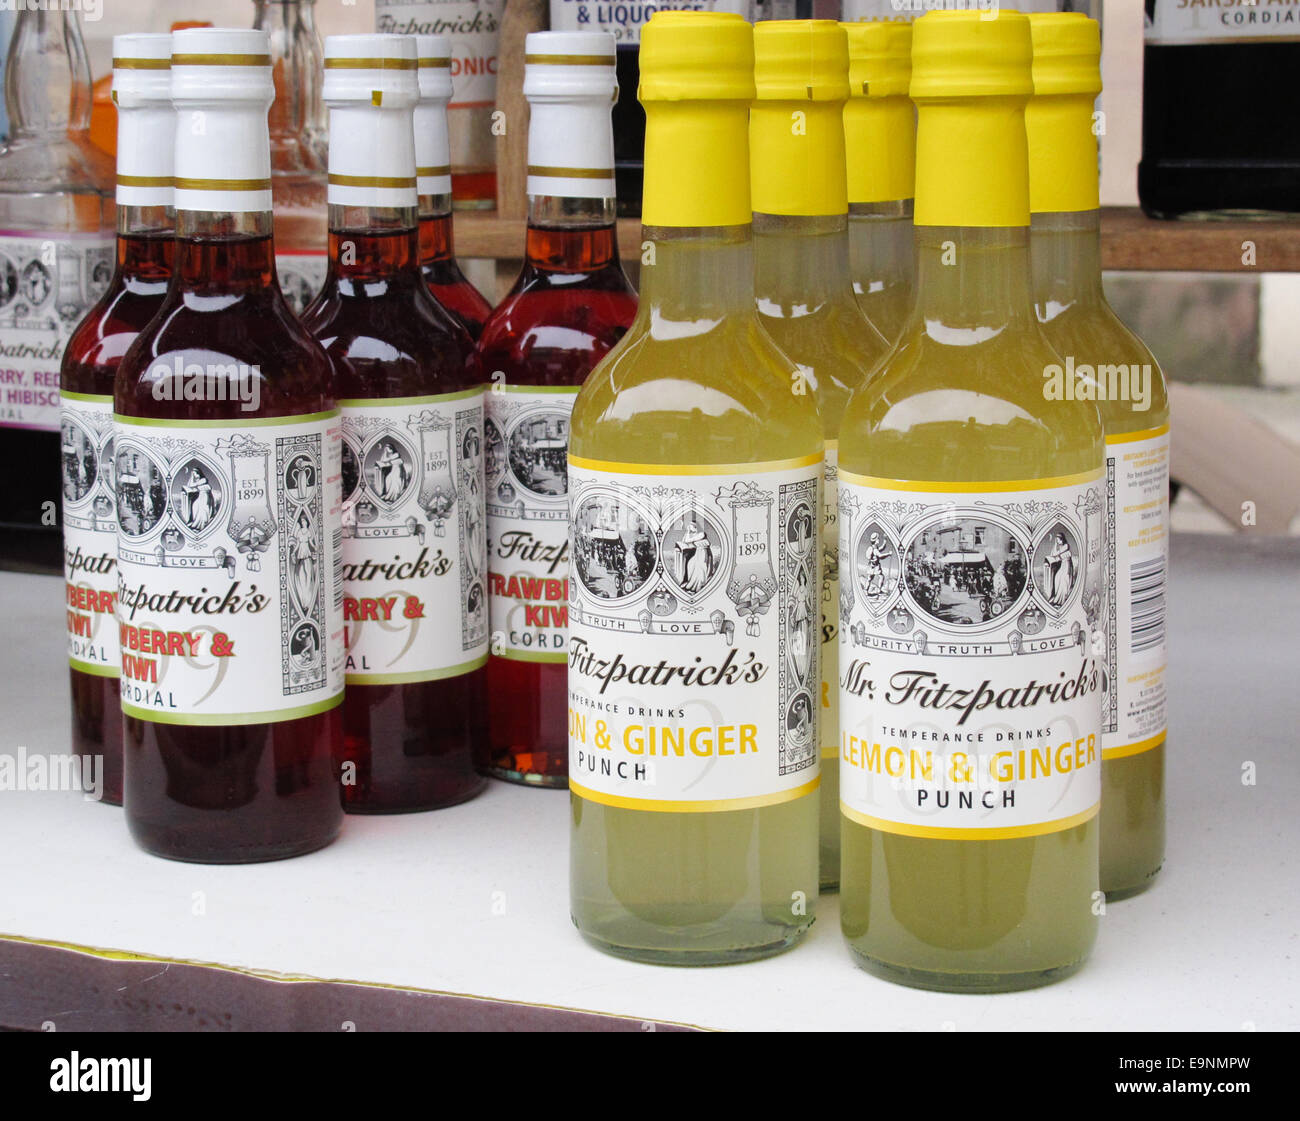 Bottles of lemon and ginger punch and cordial for sale. - Stock Image